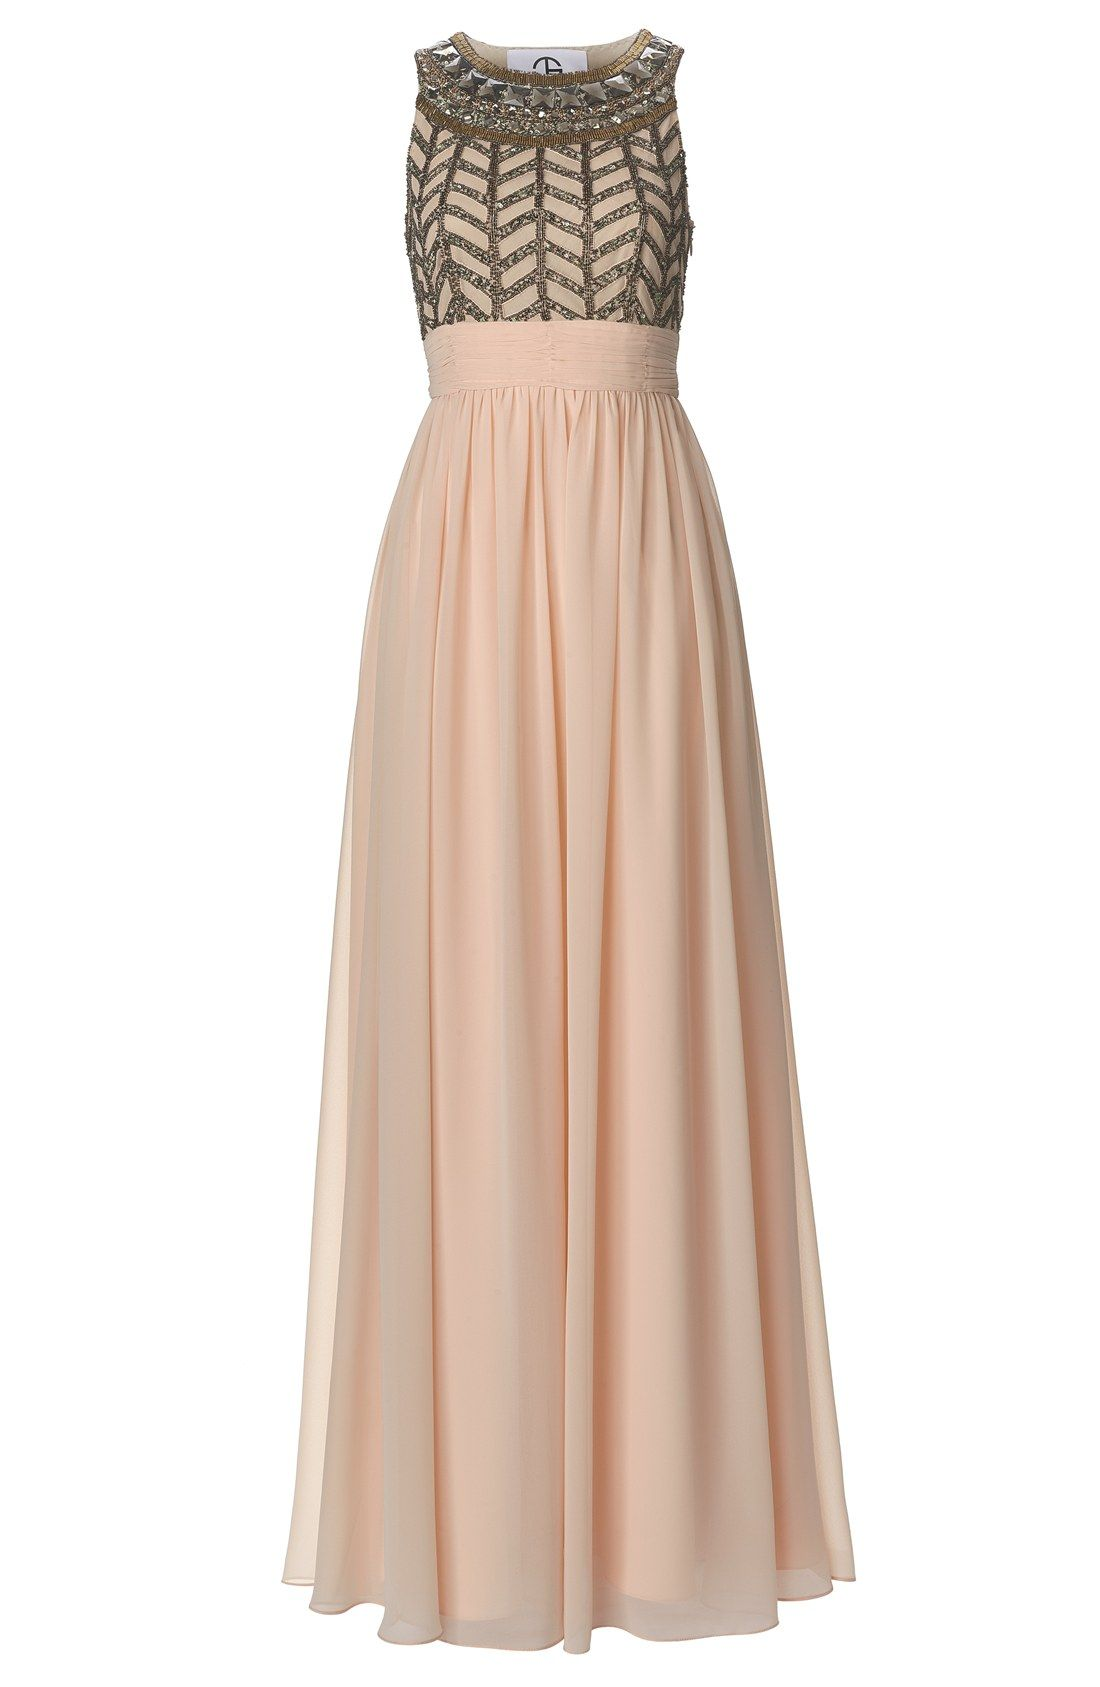 This Grecian style prom dress is so dreamy... | Our Favorite Things ...